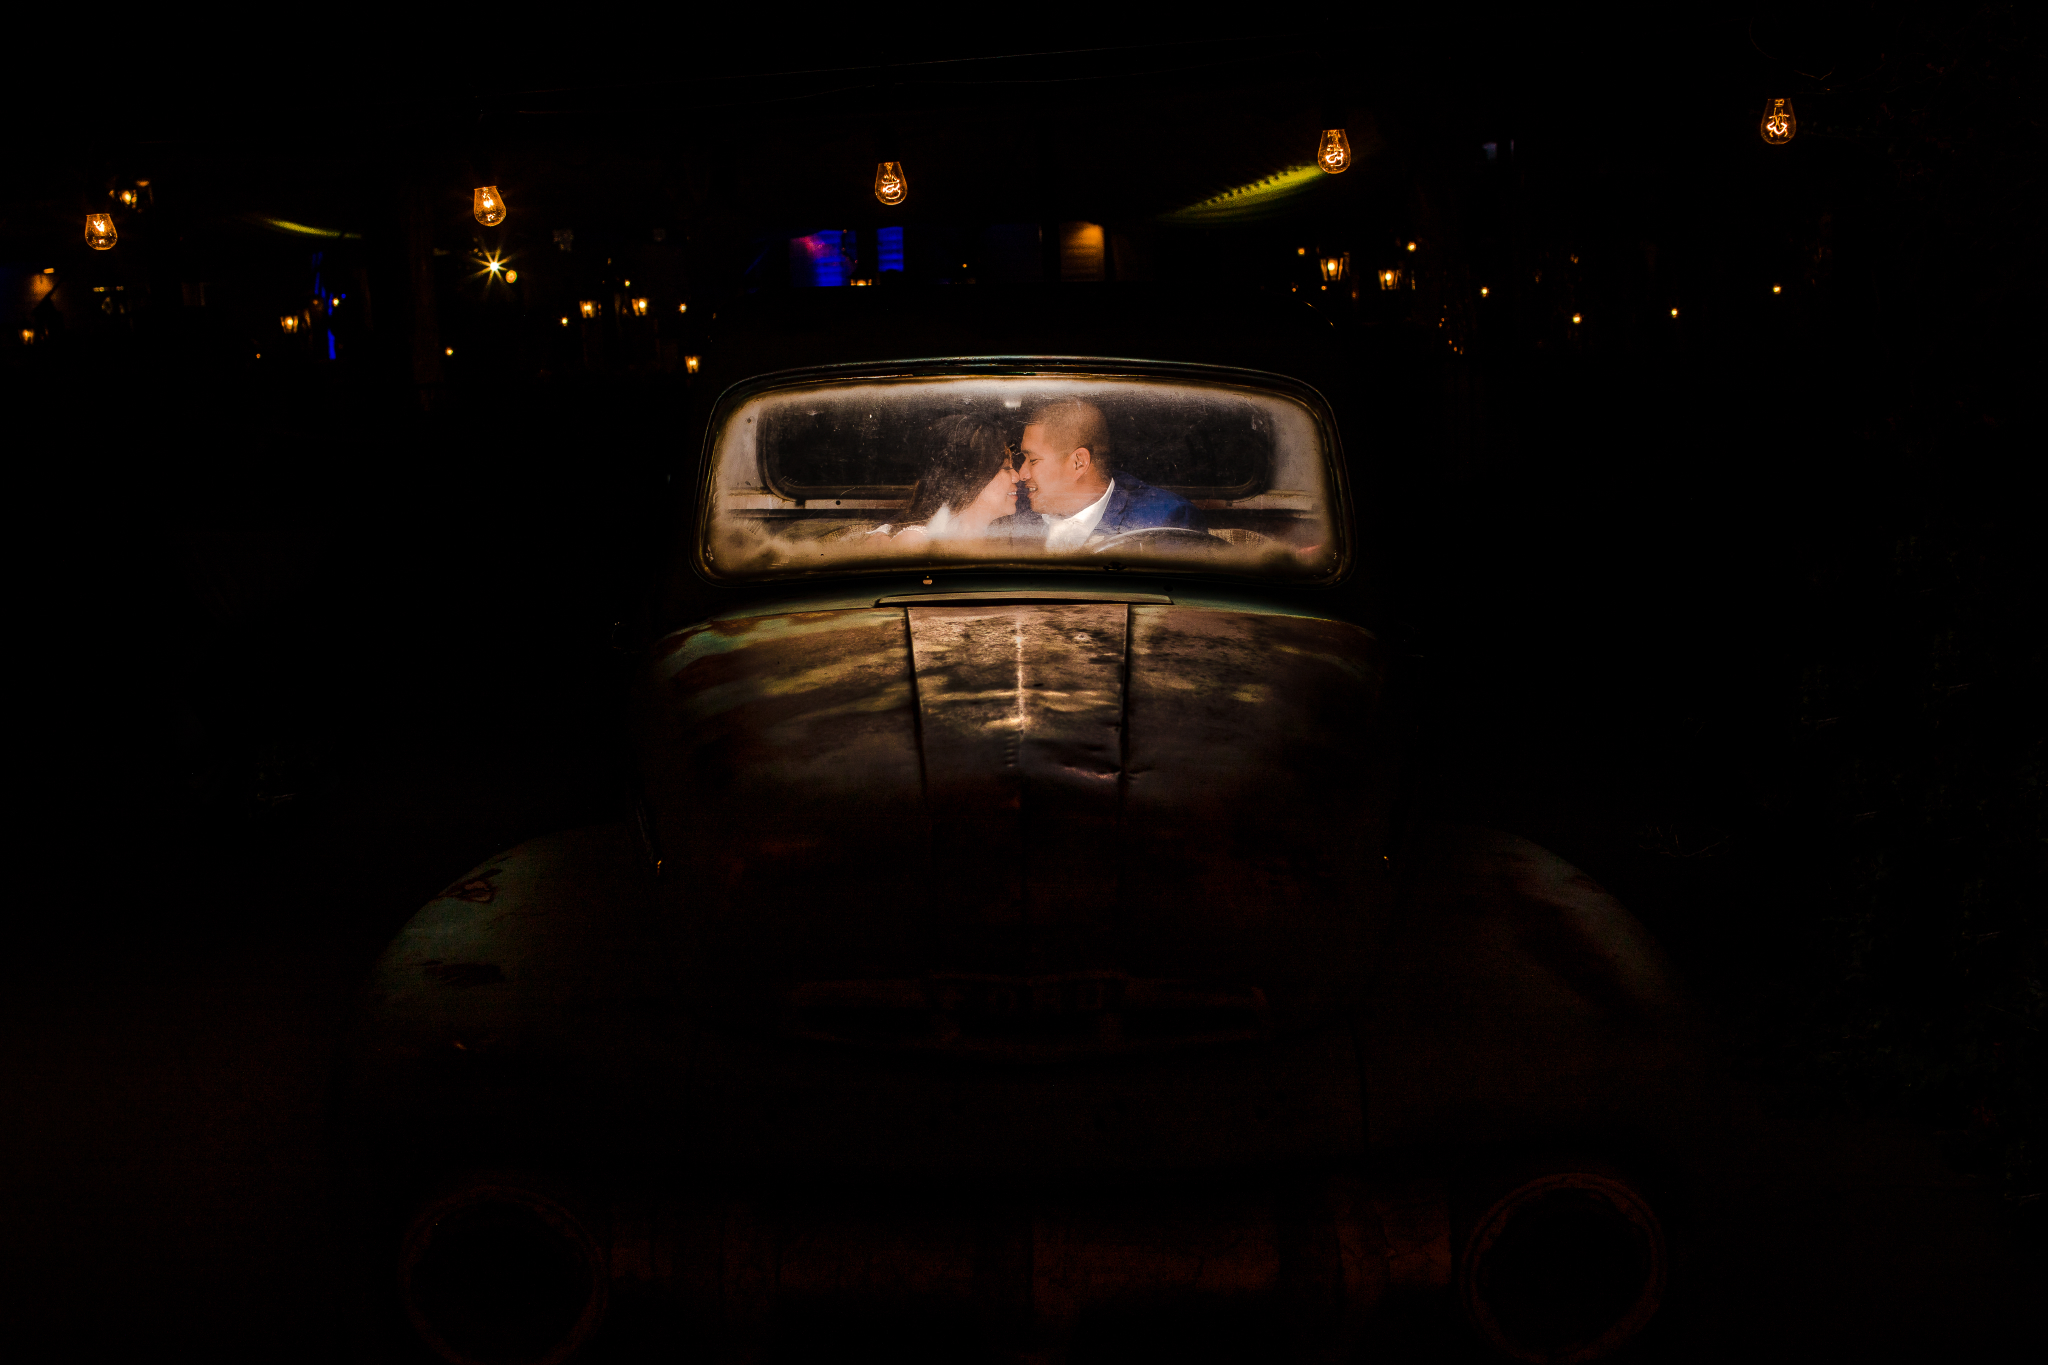 san diego wedding   photographer | couple at night in car